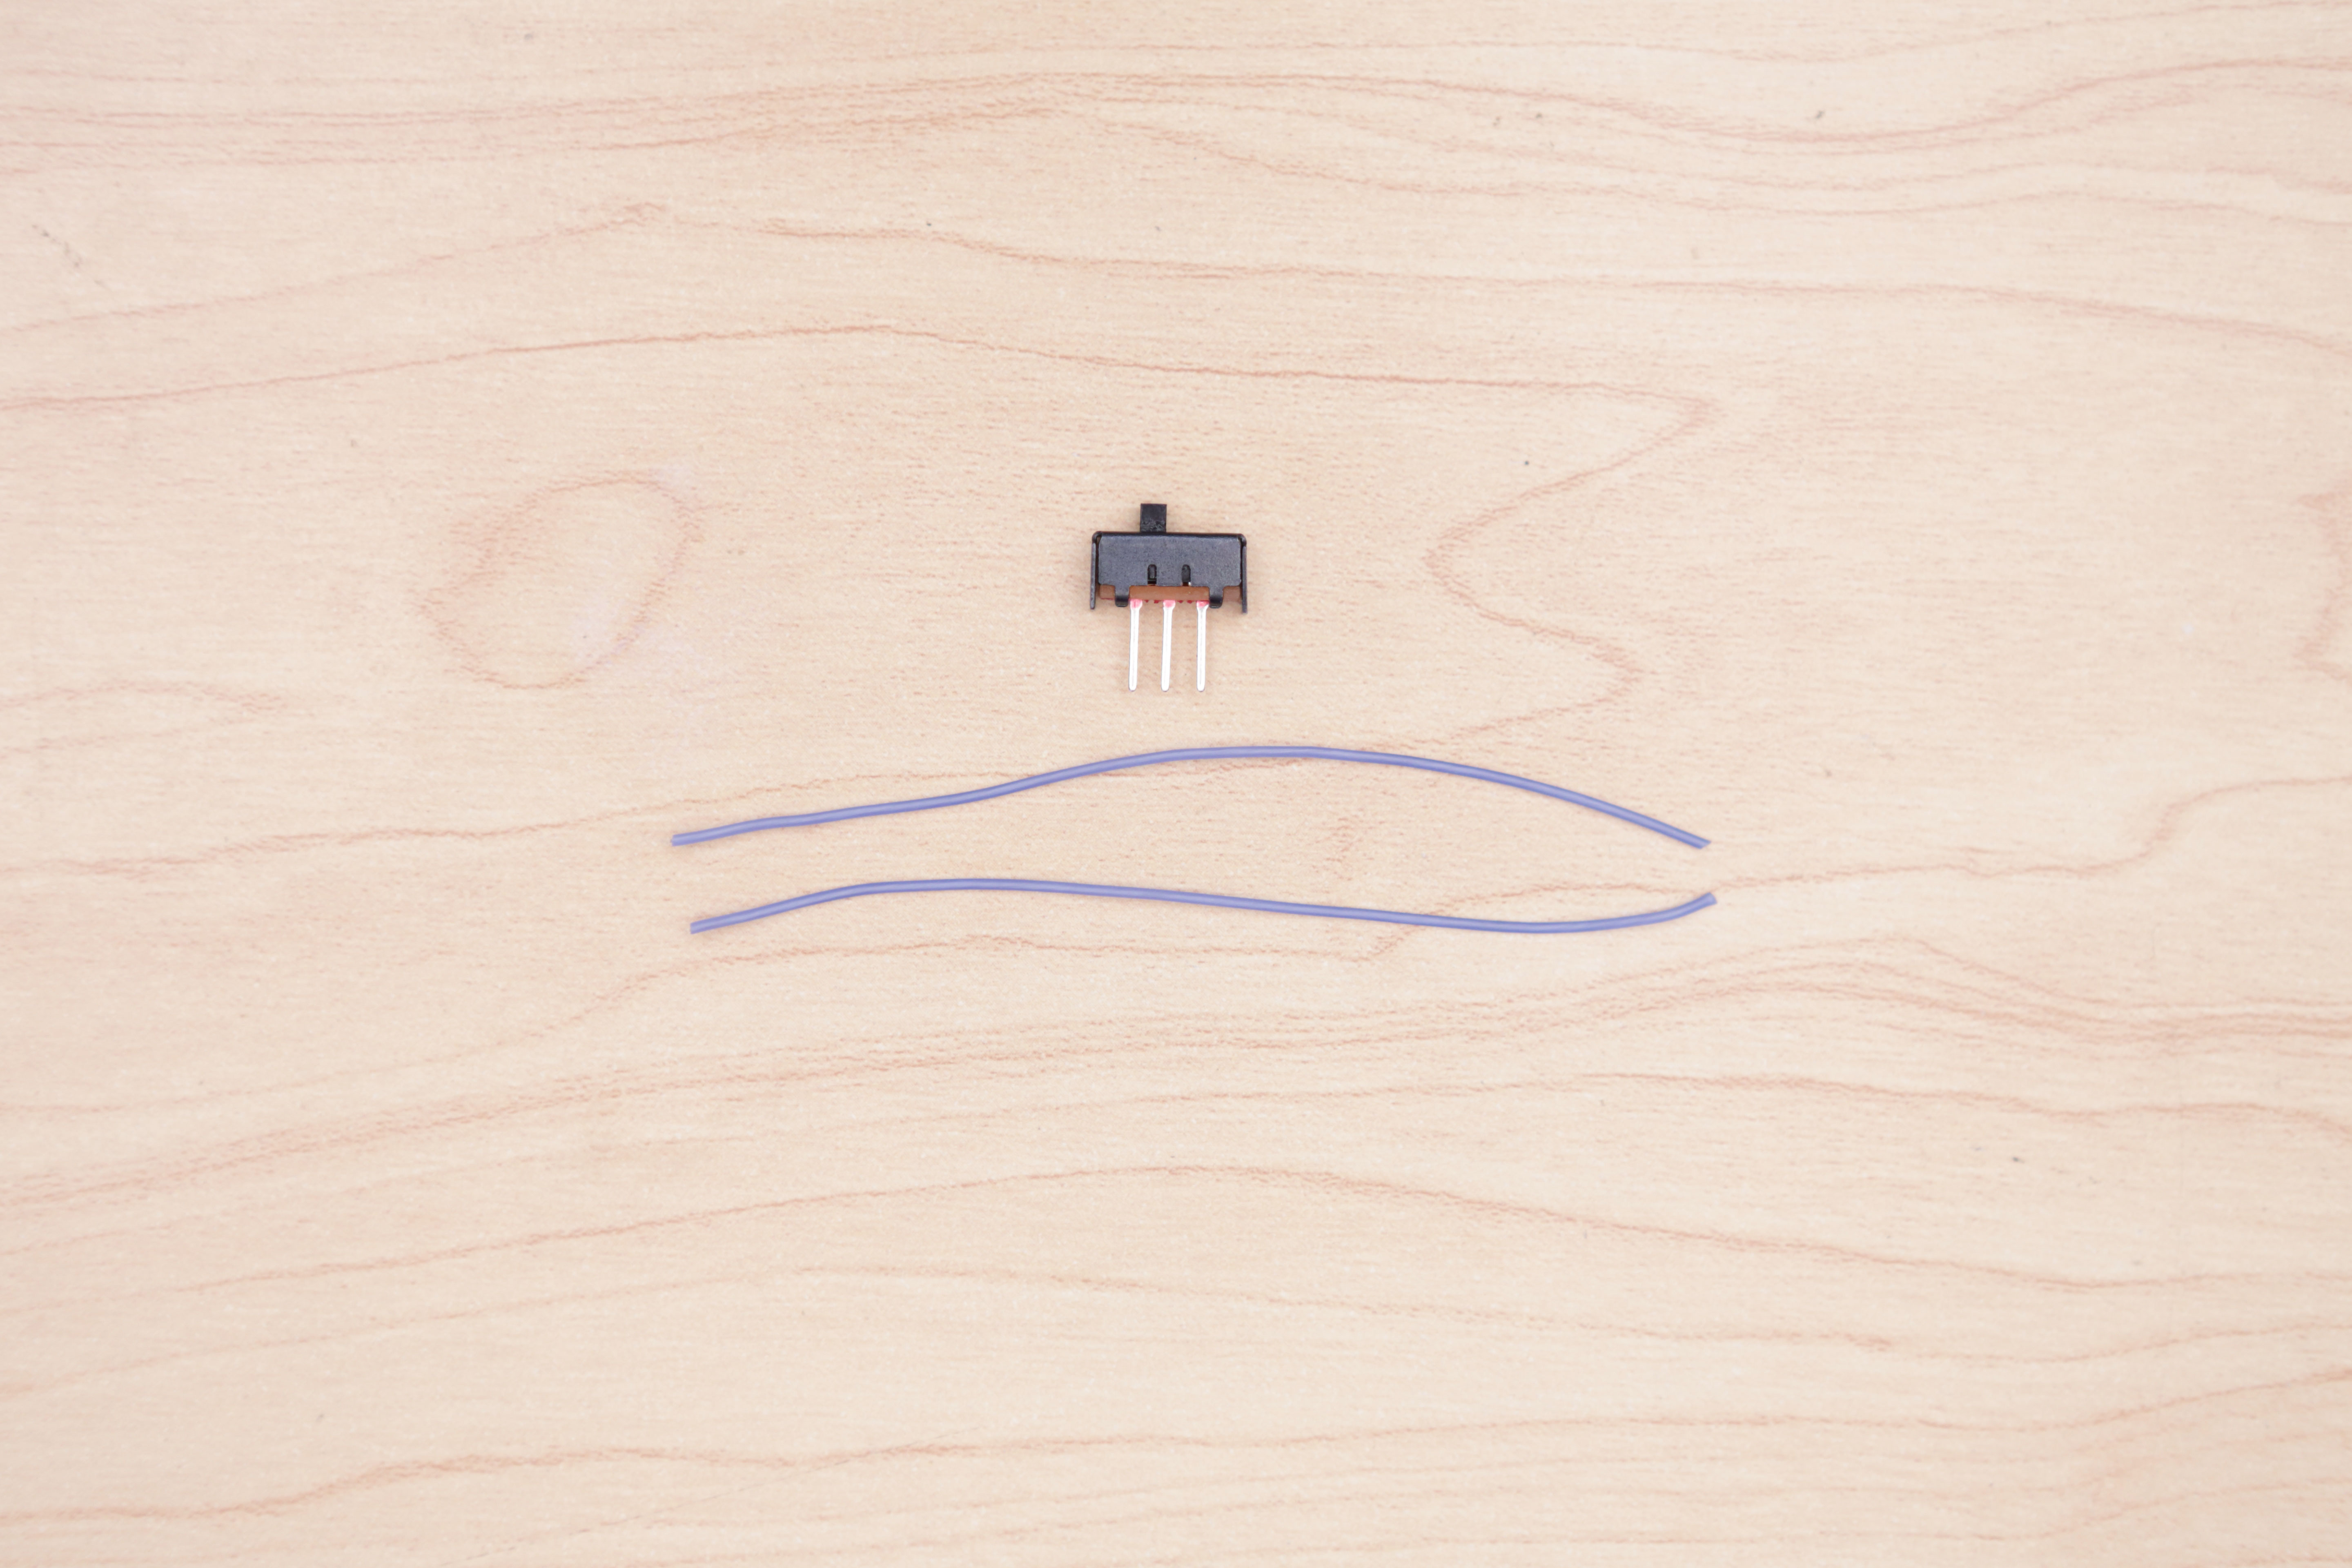 3d_printing_switch-wires-presolder.jpg